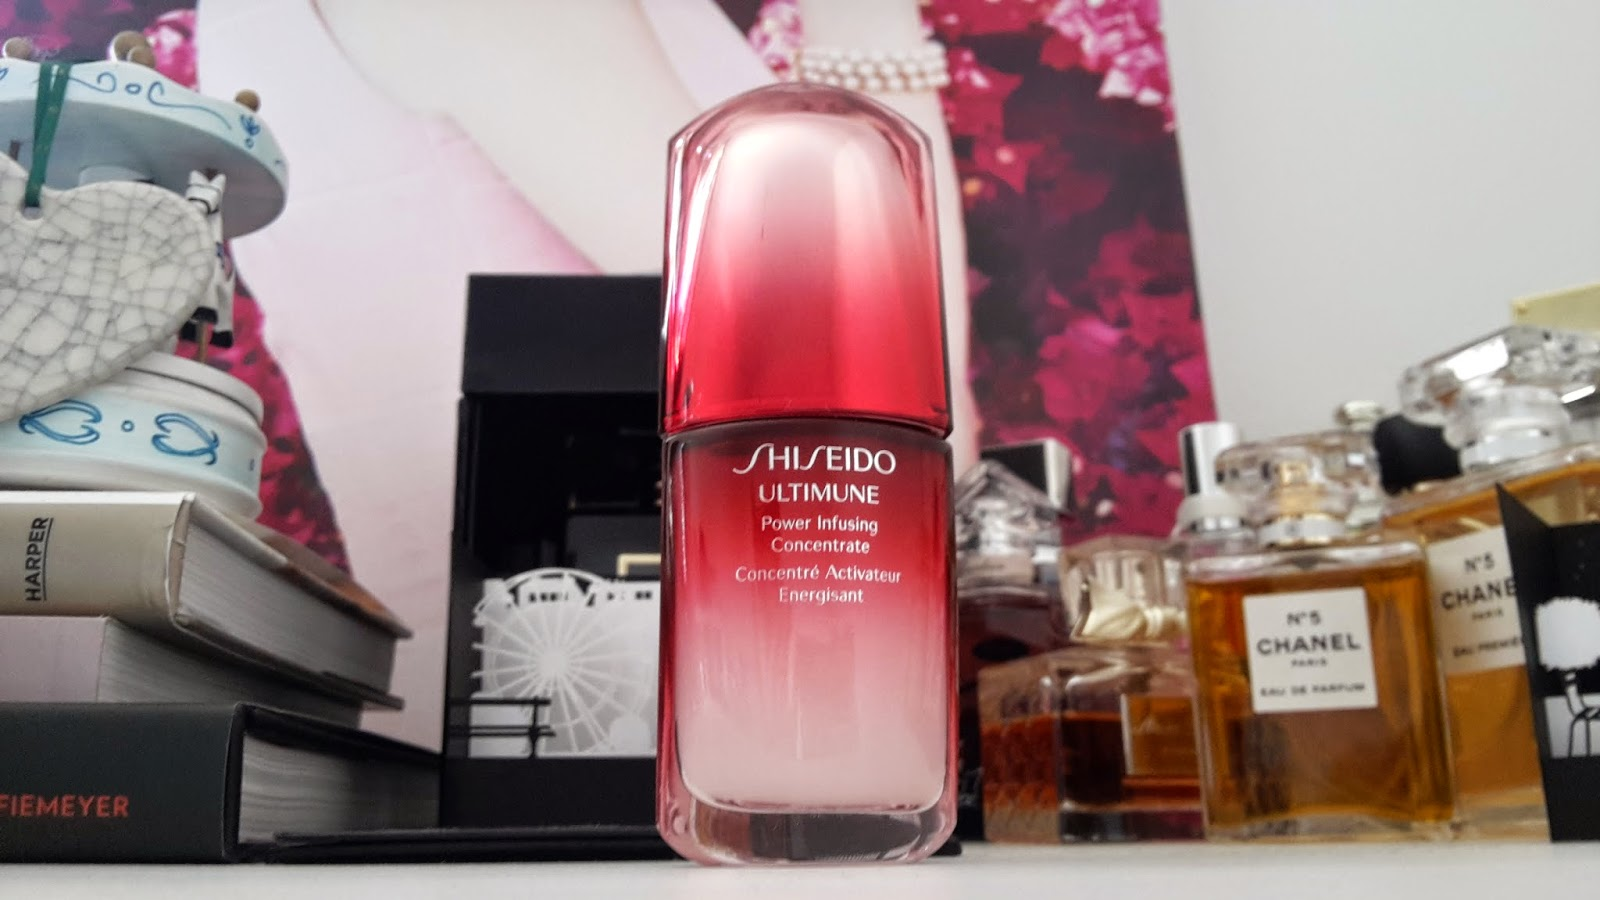 prodotti beauty skin care creme viso top 2014, shiseido ultimune